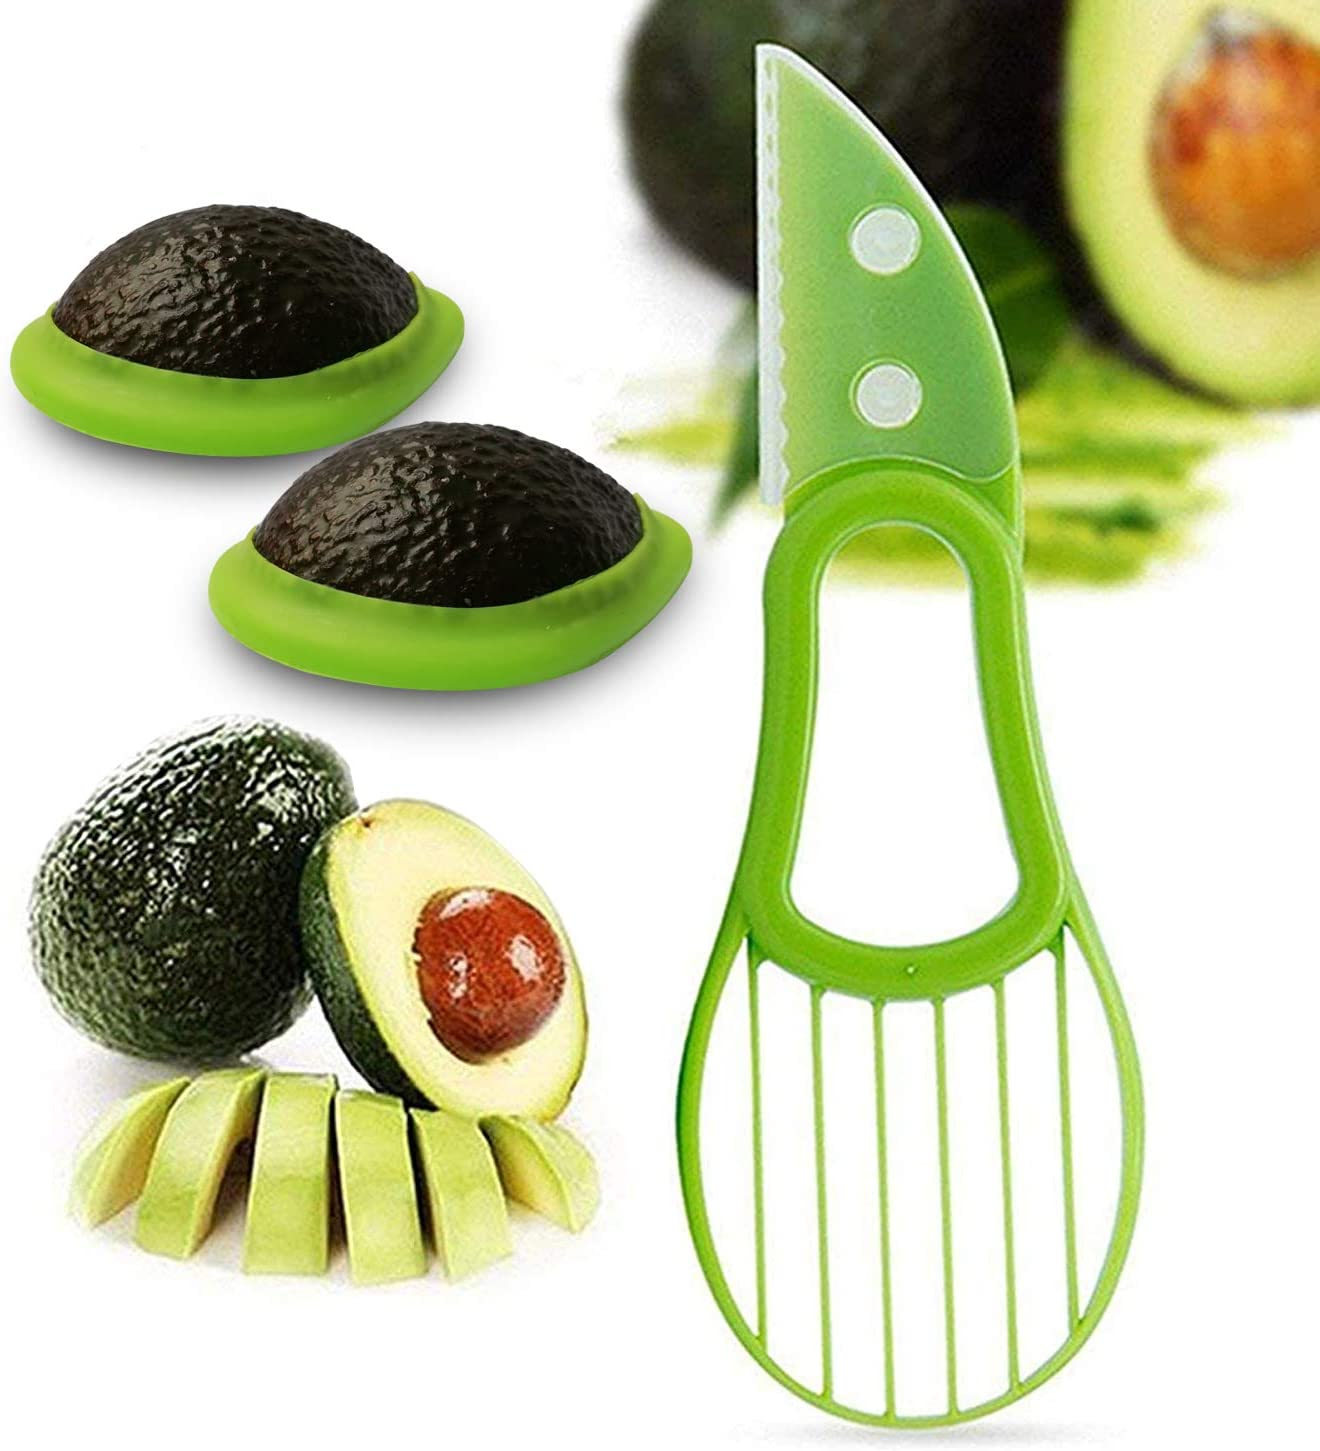 Avocado Saver and Slicer 3 in 1 / Avocado Holder/Keeper Storage Cover Silicone Food Savers/Avocado Slicer/Pitter/Peeler/Cutter/Skinner and Corer Tools